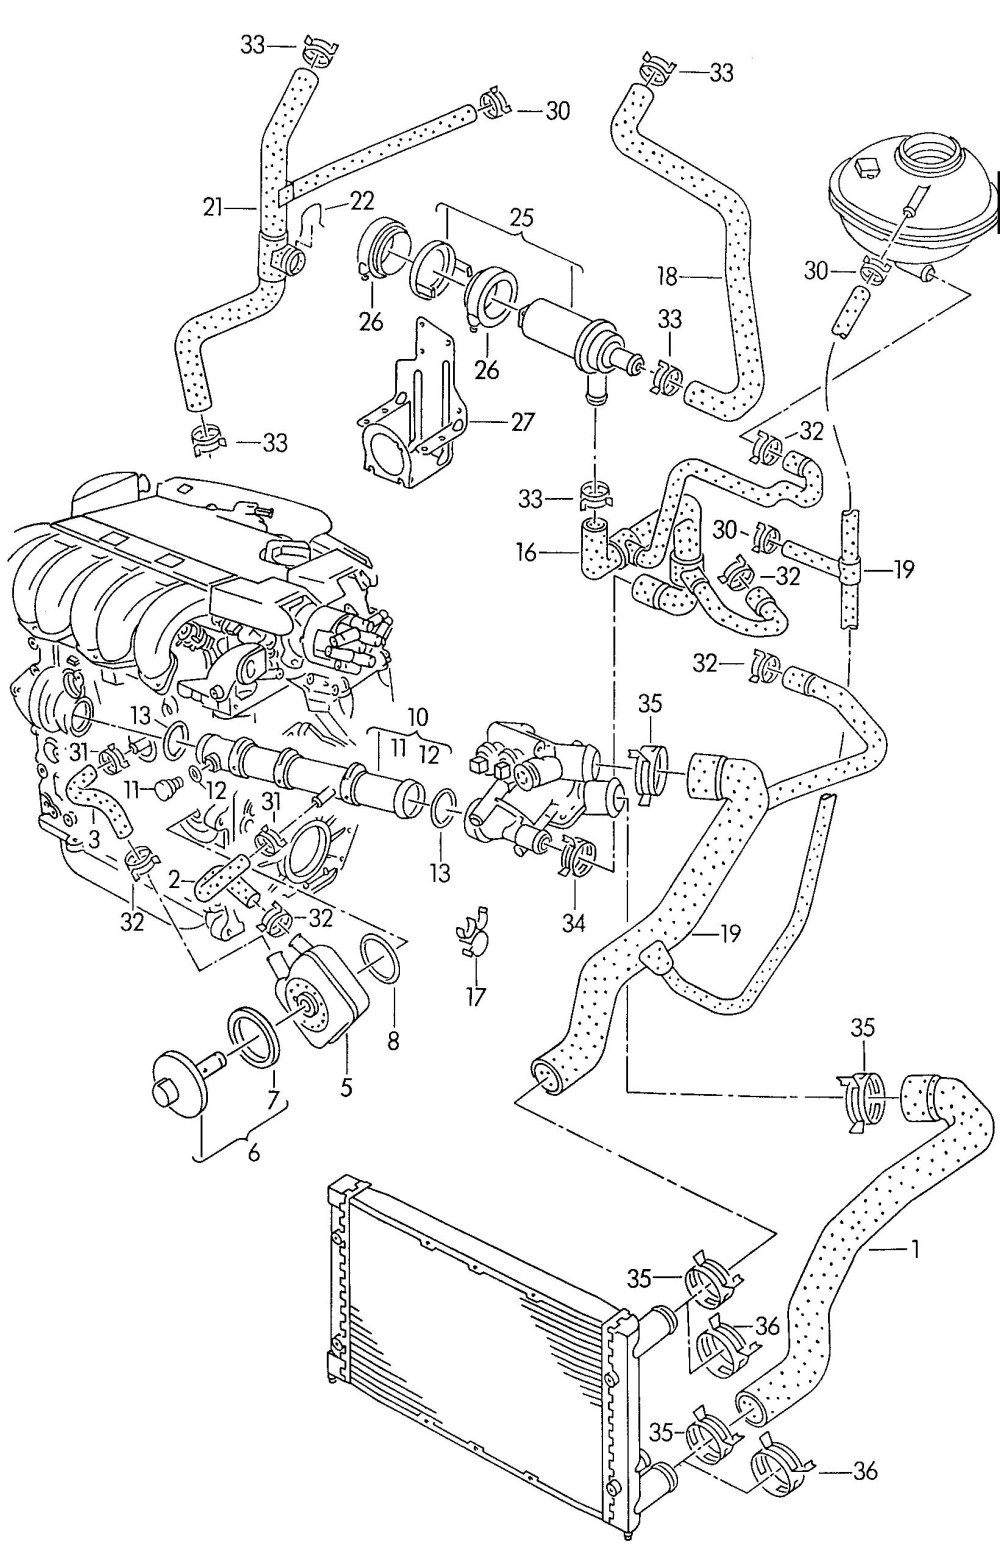 medium resolution of new engine coolant pipe vw corrado jetta 92 02 021 vw engine coolant parts diagram